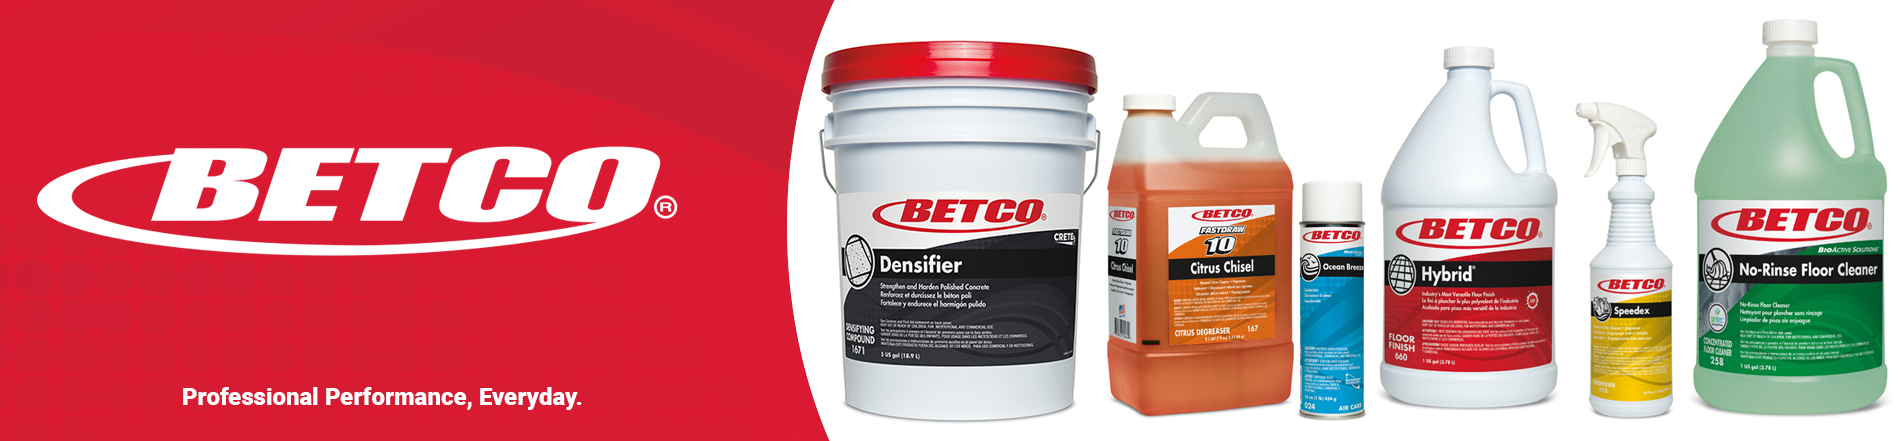 Betco - Cleaning Innovations That Matter.